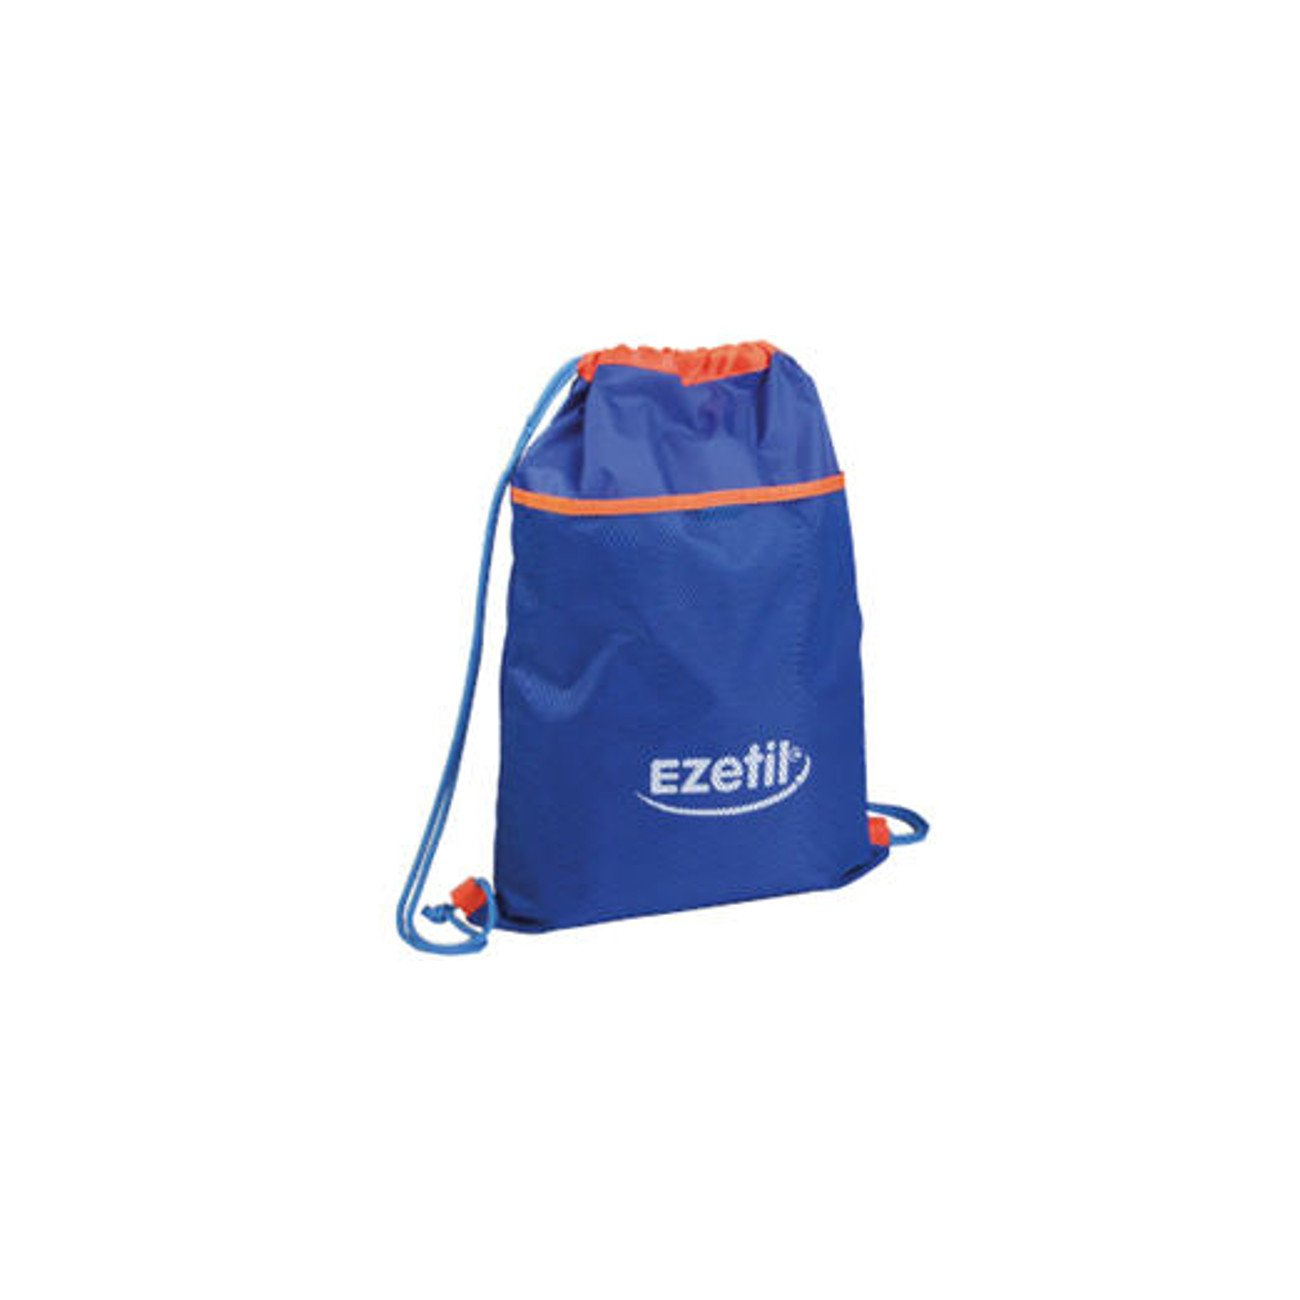 EZetil Bolsa Nevera Just Cool Beach Bag Azul para la Playa para ...